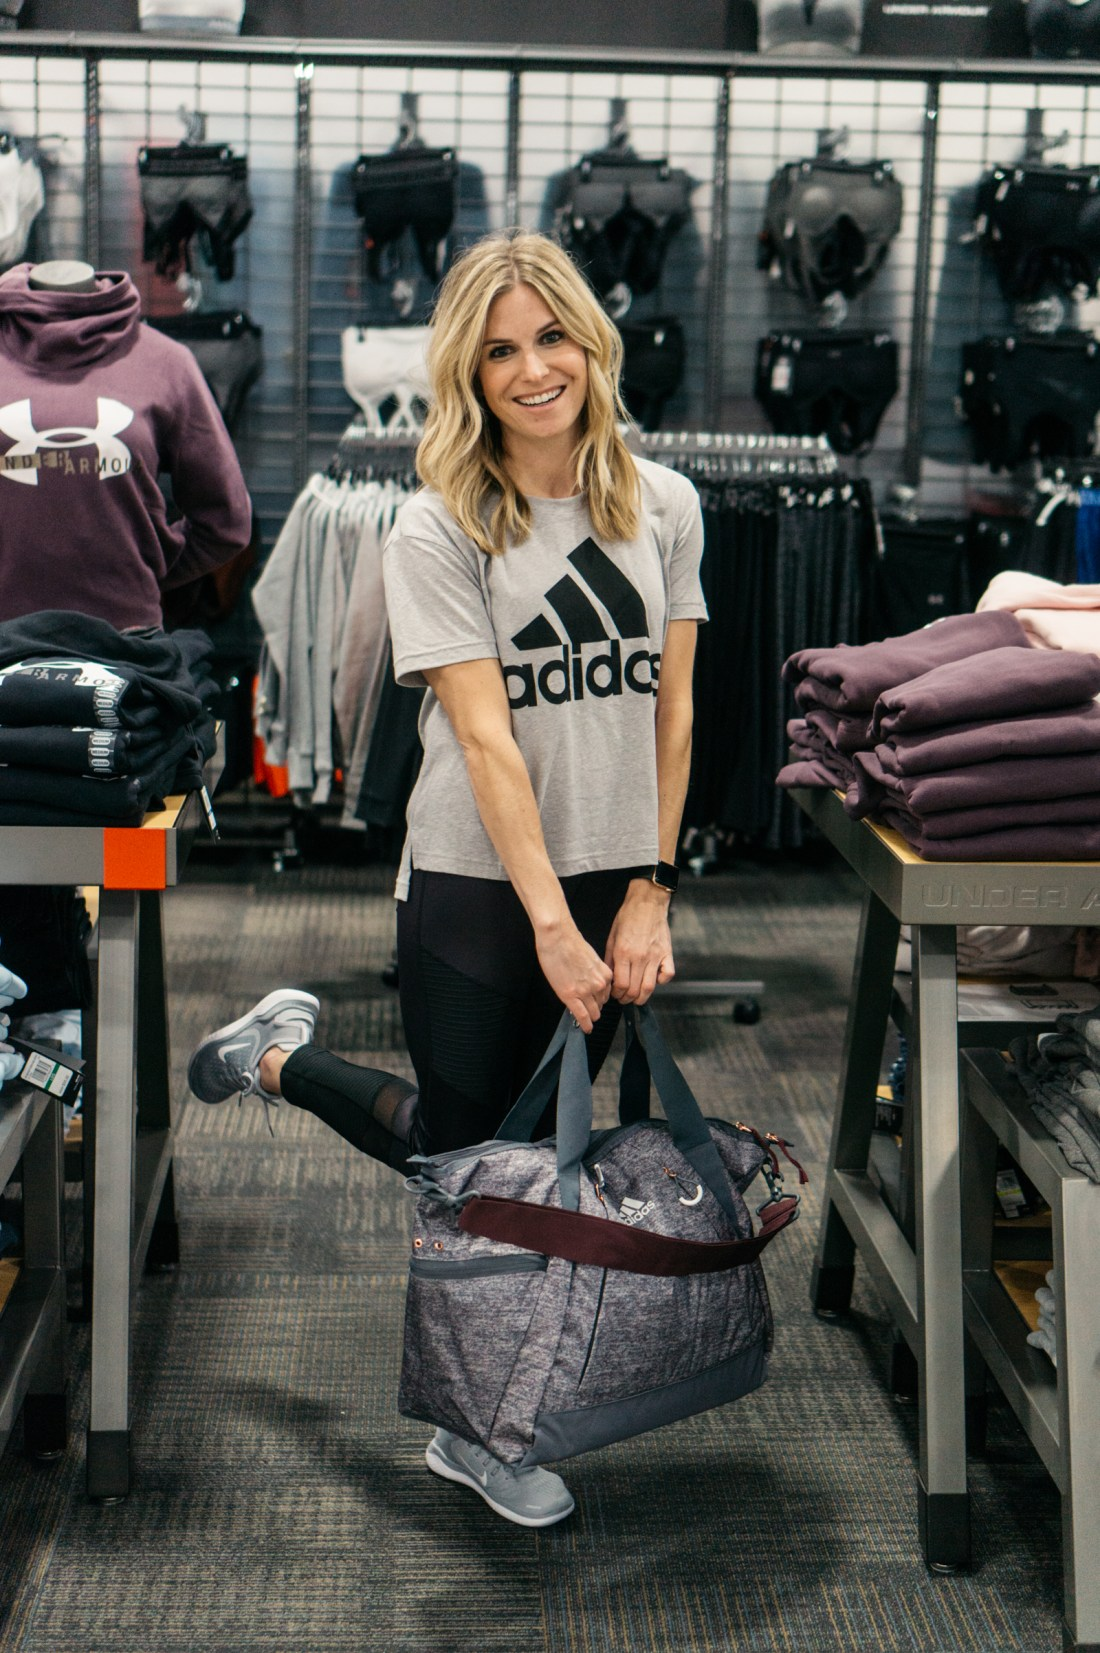 Academy Sports & Outdoors - One Small Blonde